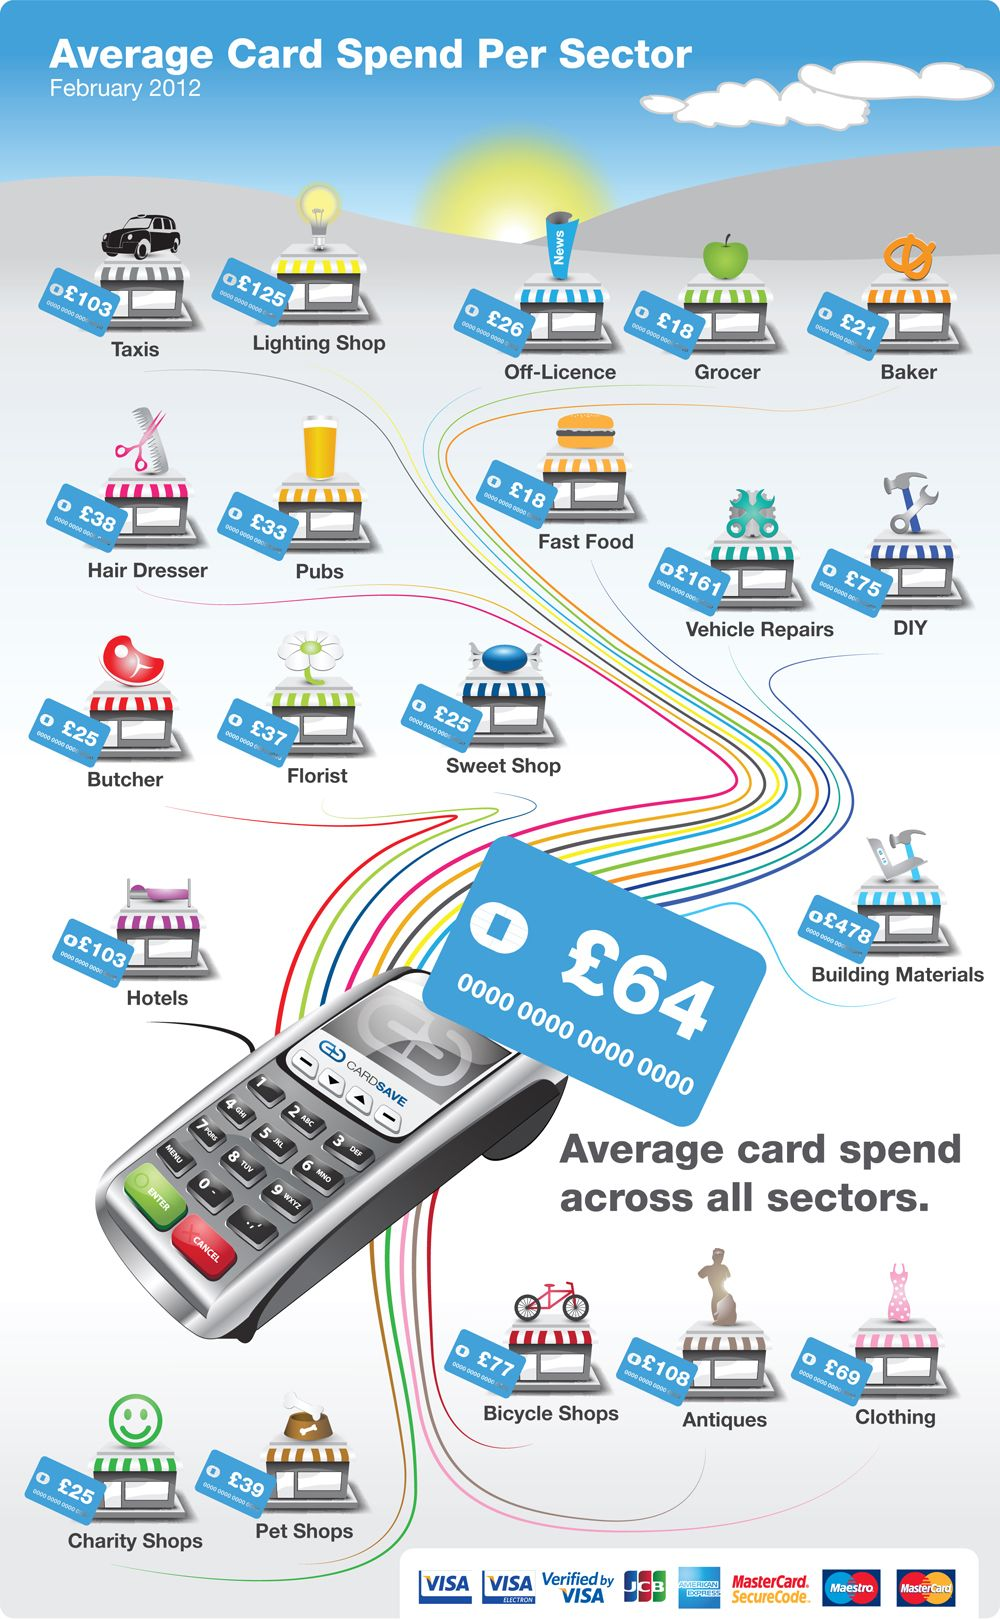 CardSave Small Business Card Payments Index | Infographic Samples ...